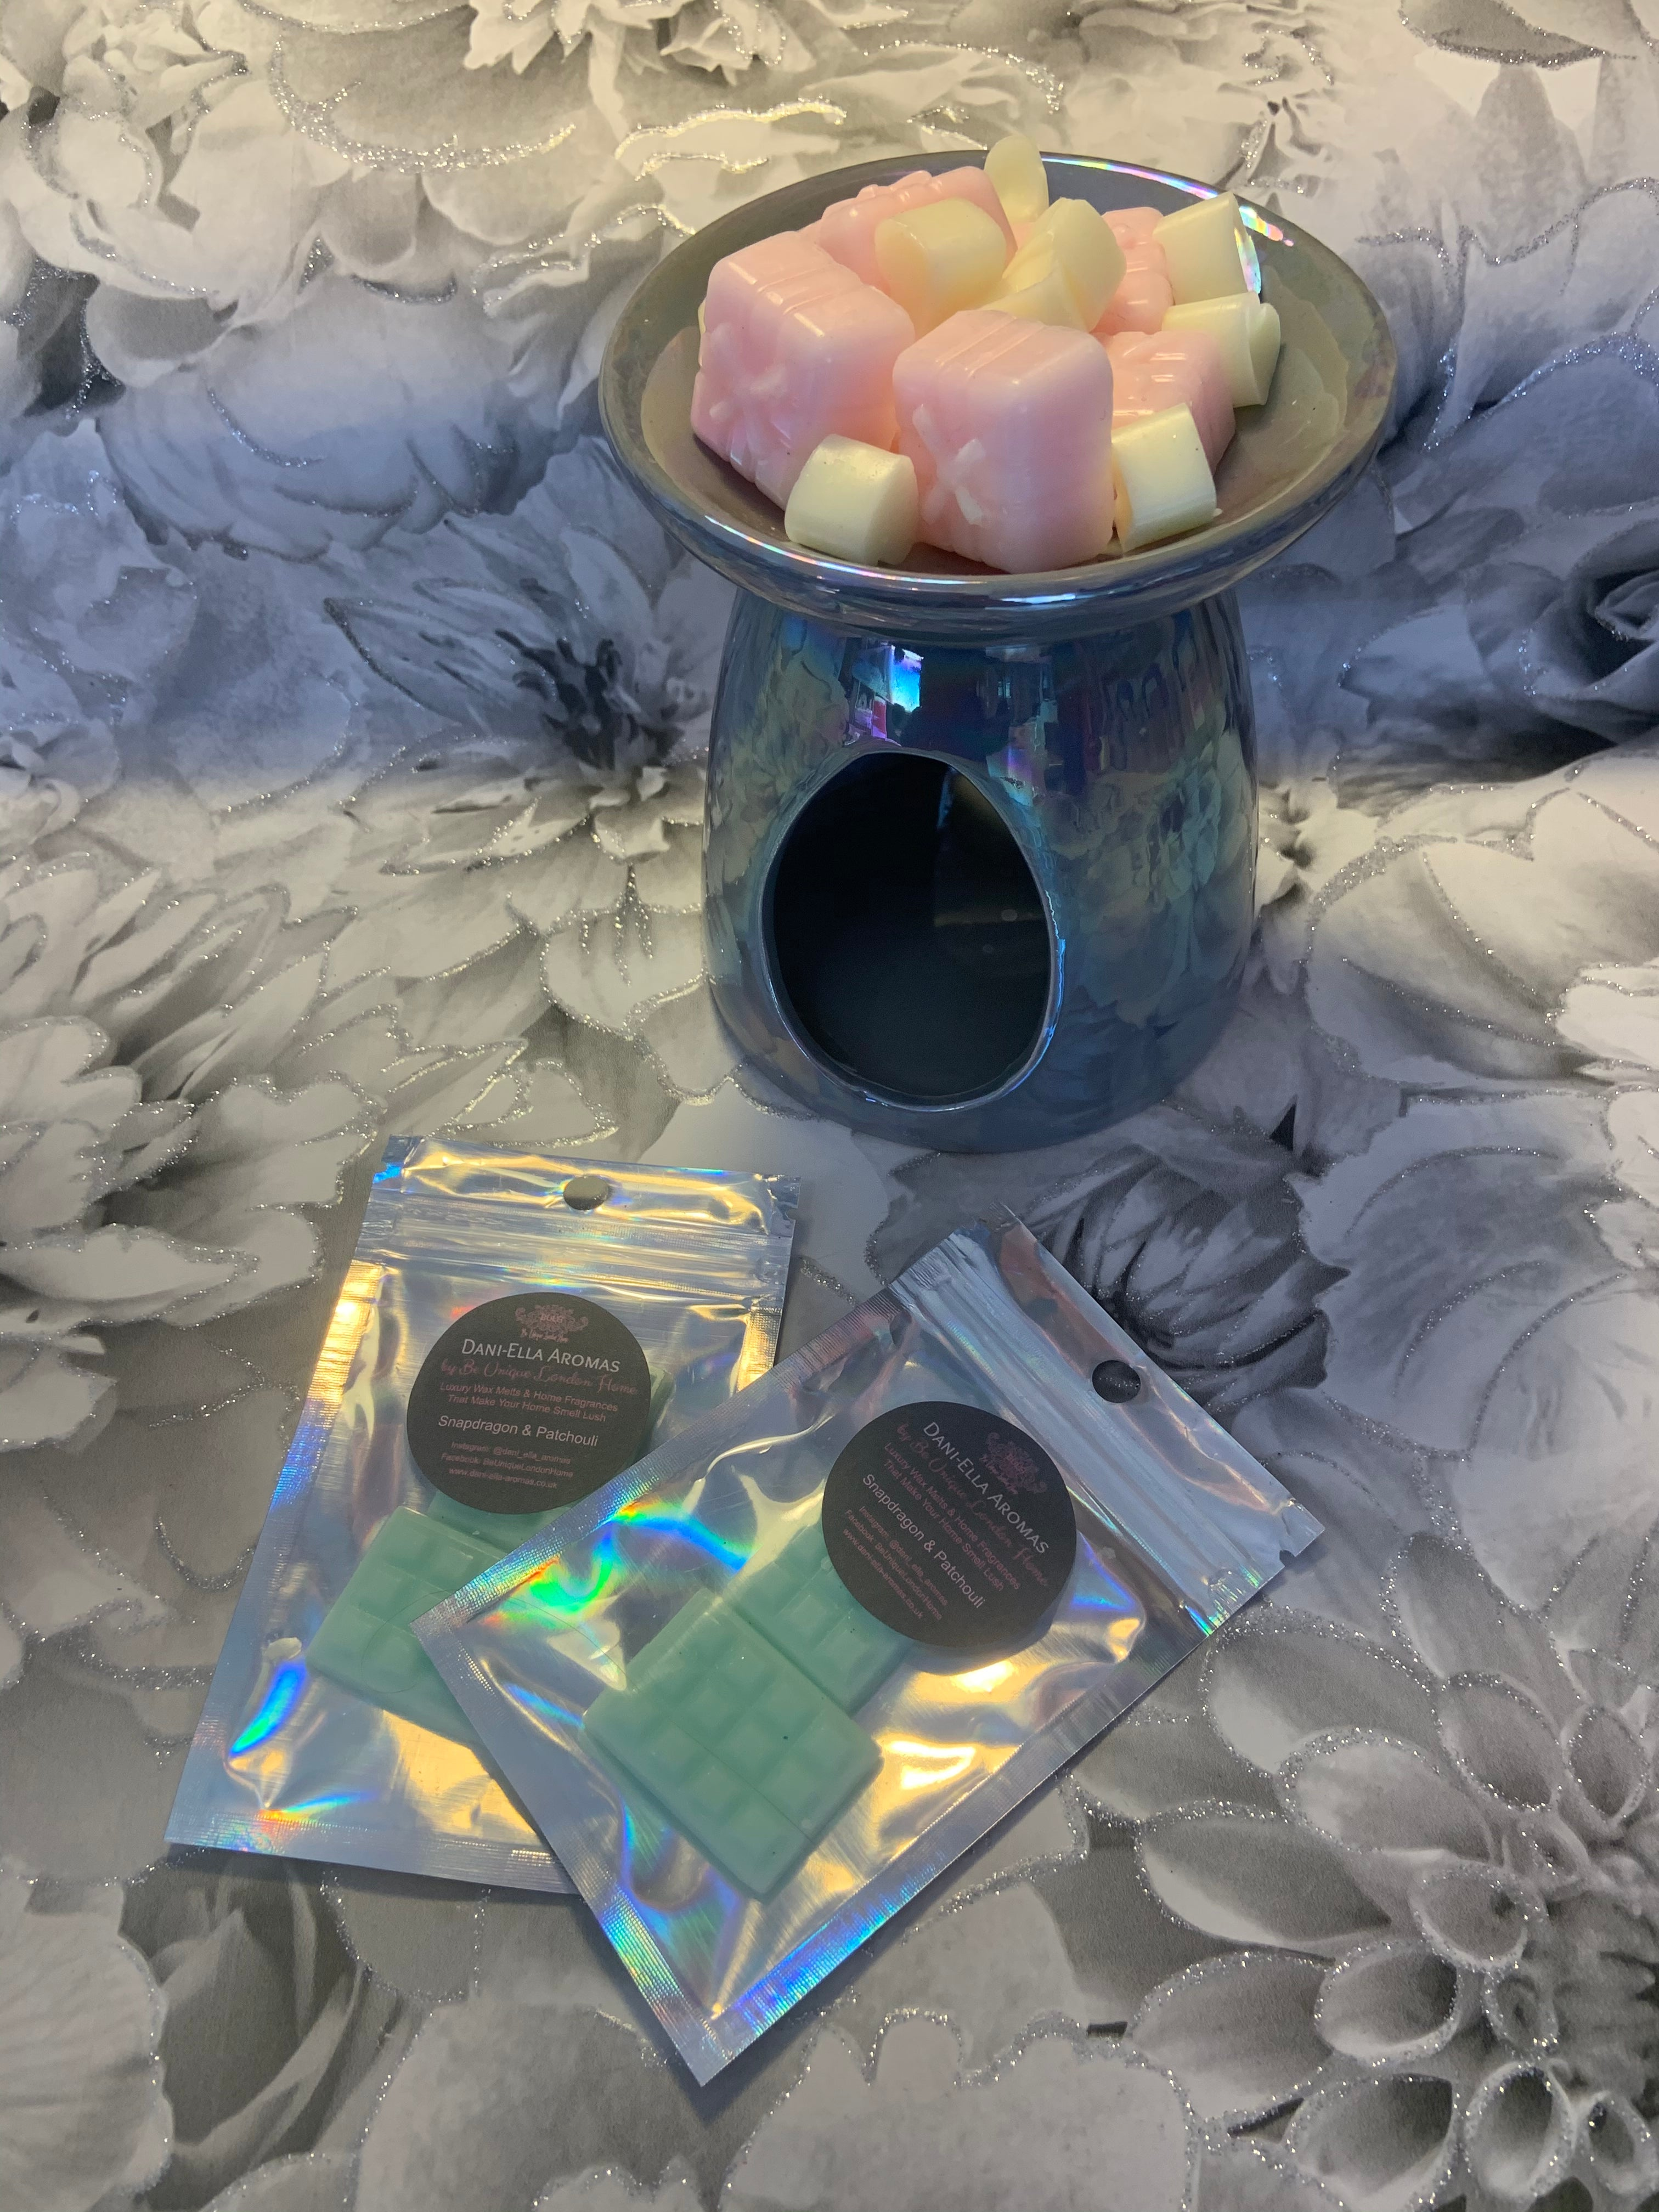 Snapdragon & Patchouli - Sample Bag Luxury Wax Melts